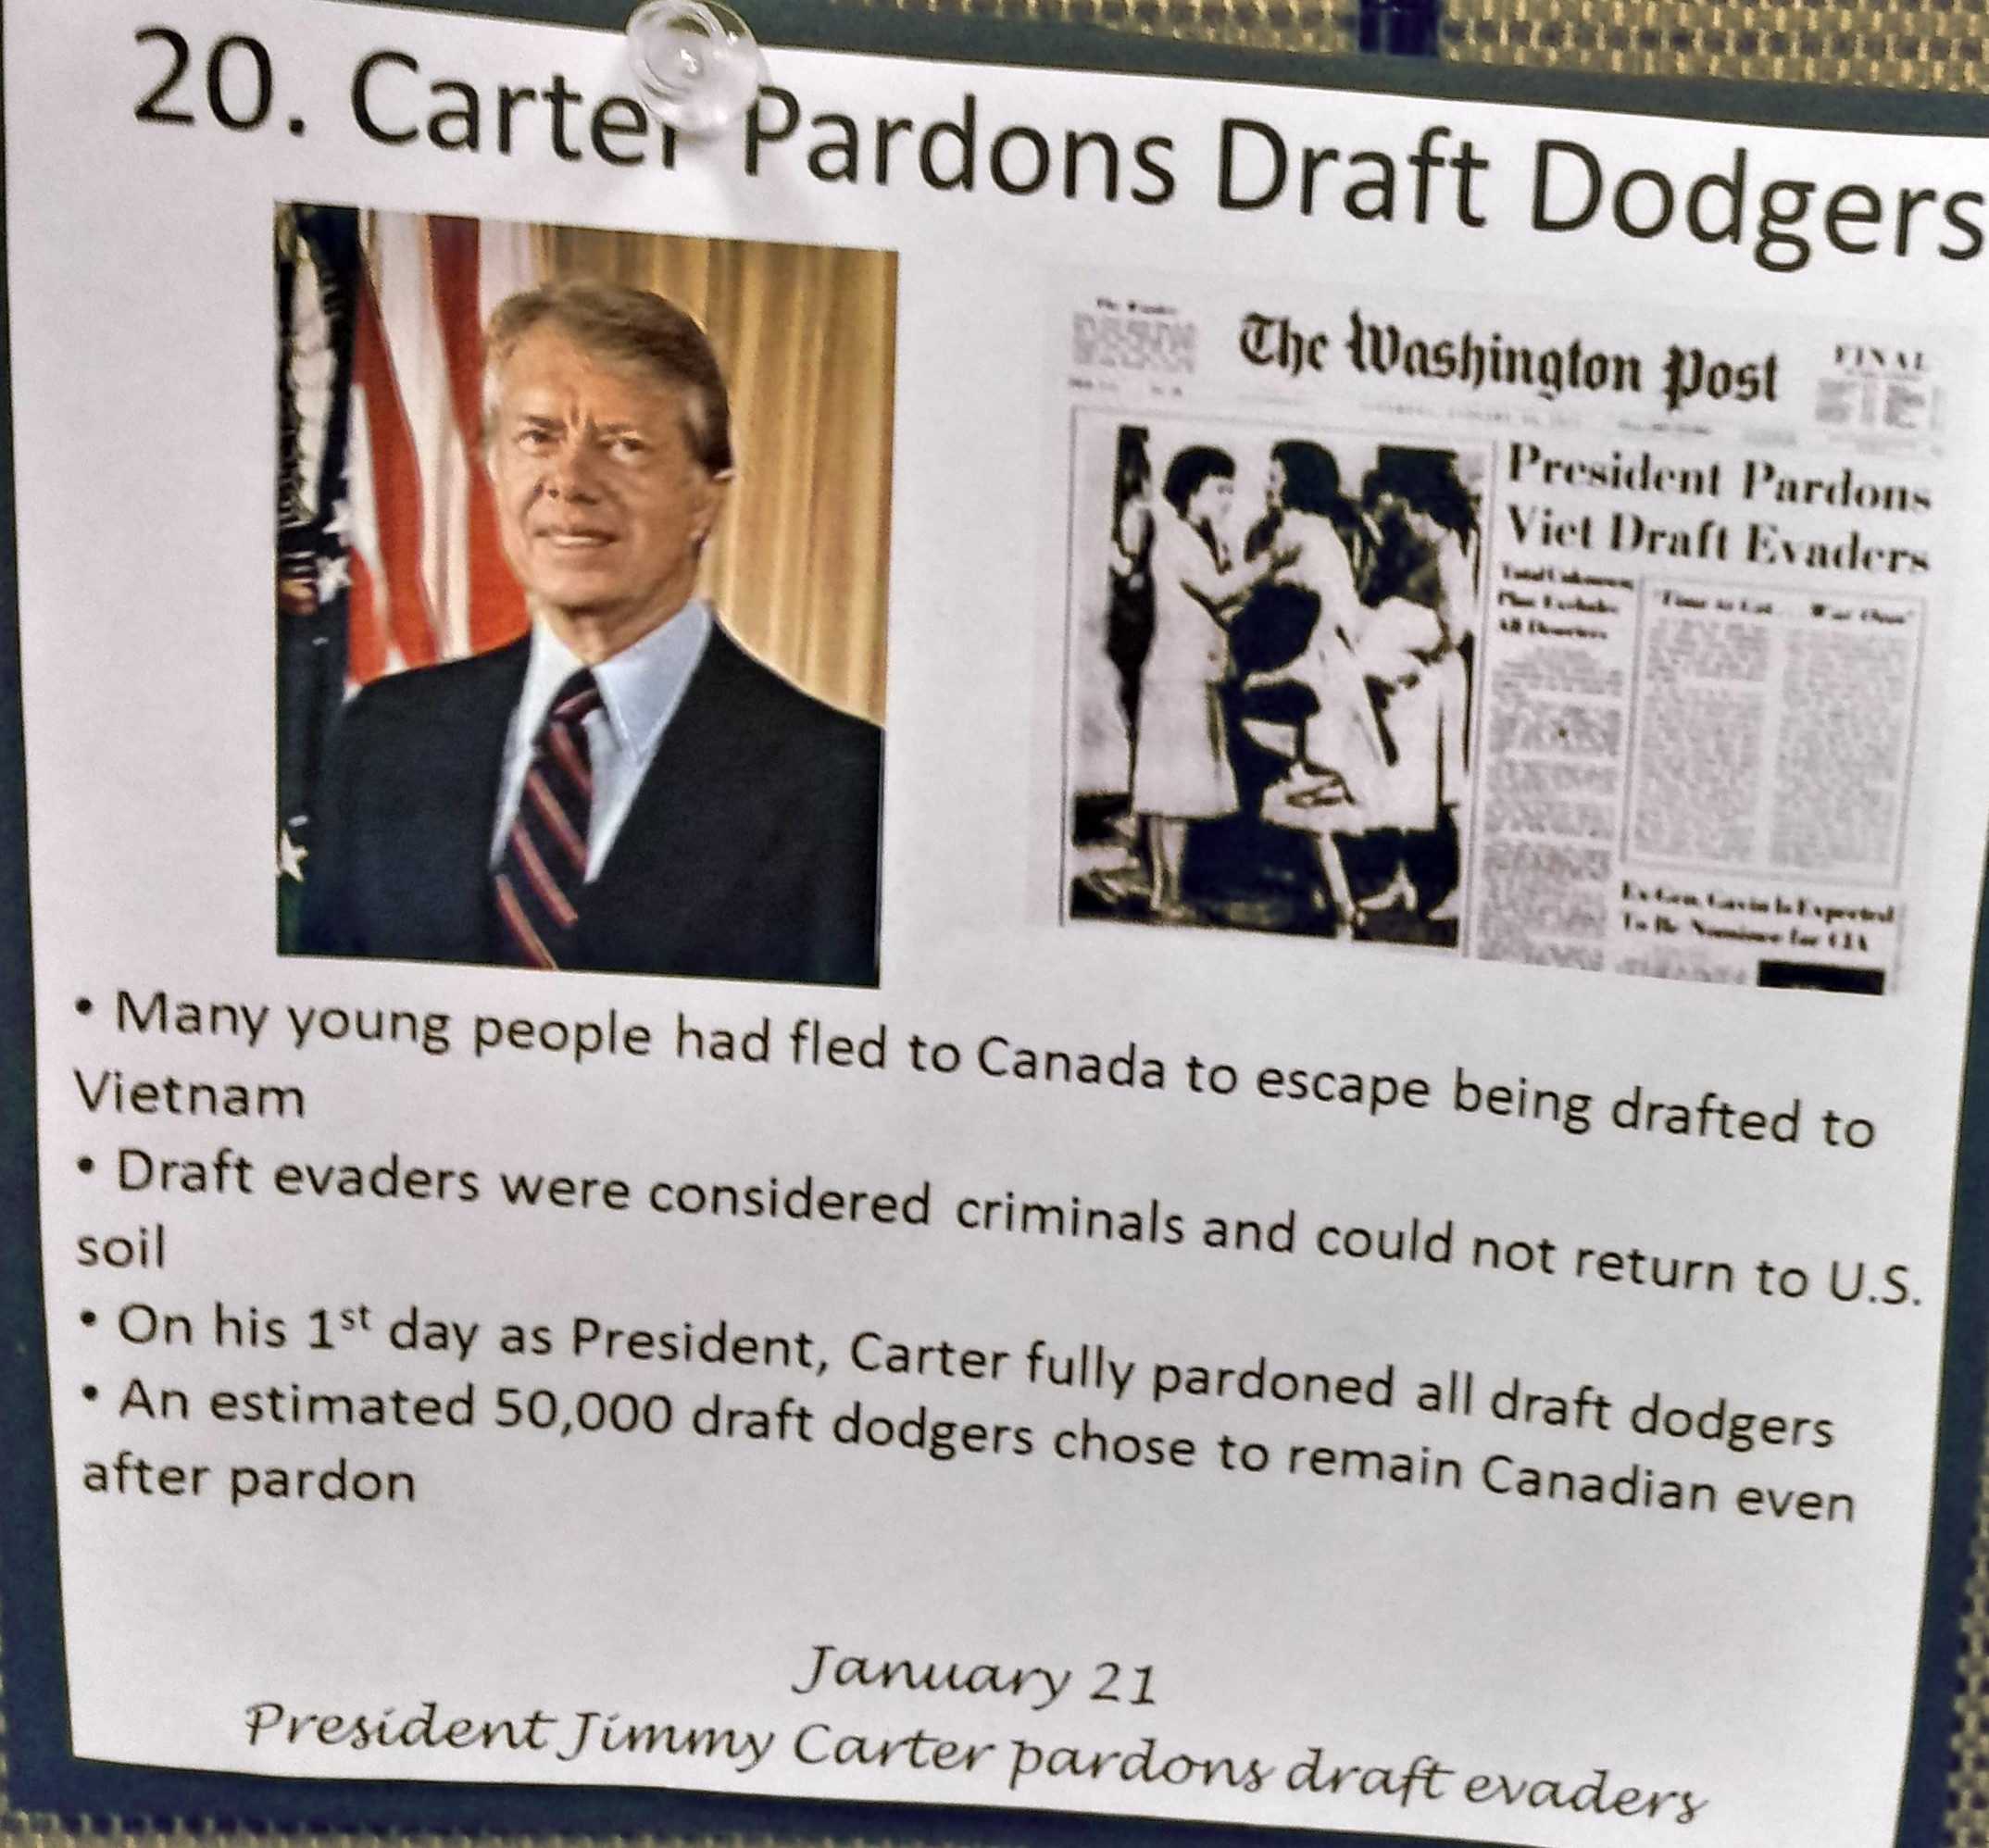 """Photograph of President Carter & reproduction of p.1 of the Washington Post, banner headline, """"President Pardons Viet Draft Evaders."""""""